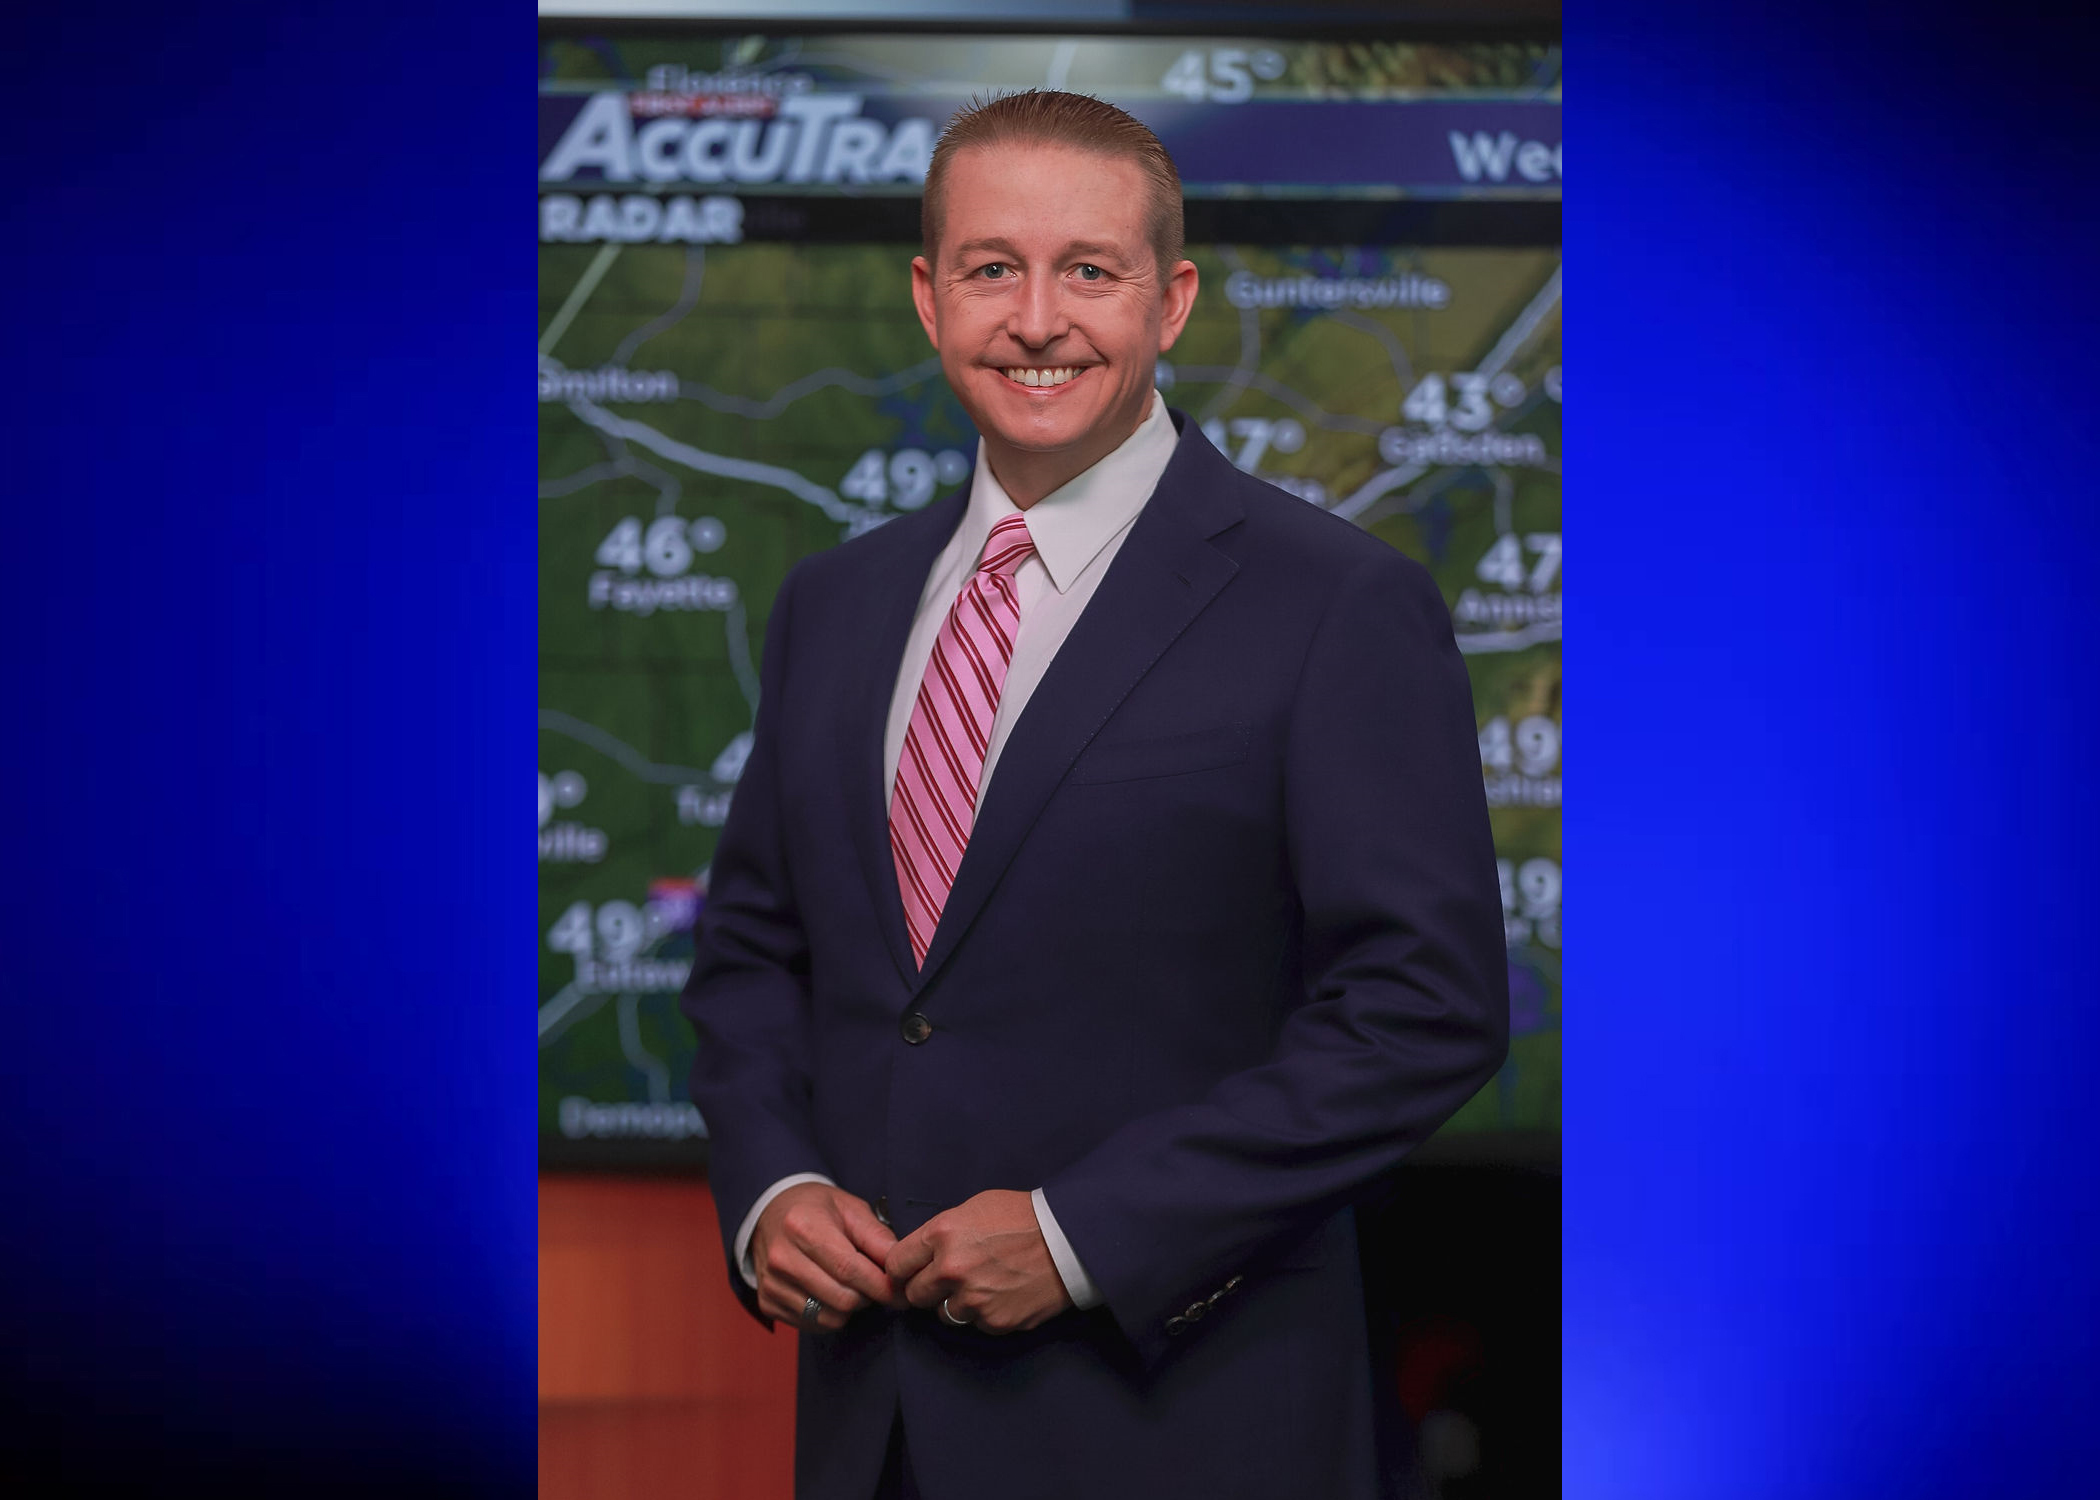 WBRC names new Chief Meteorologist as JP Dice prepares to exit